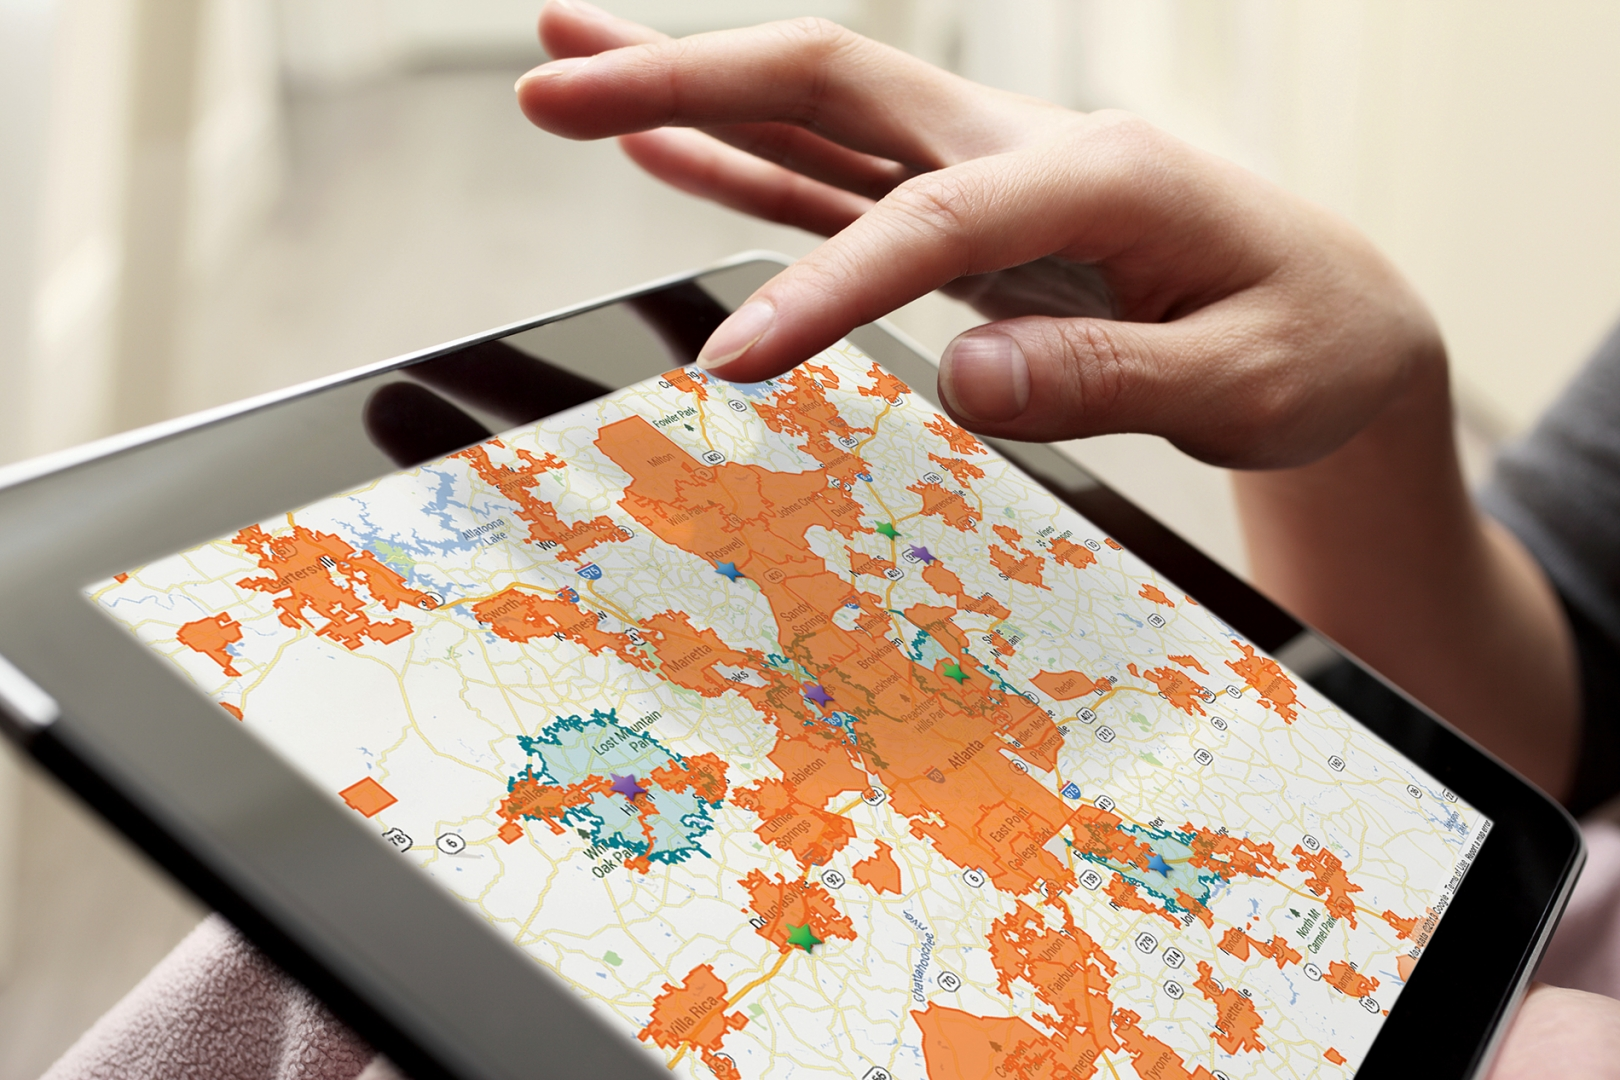 Map-based restaurant market analysis on a tablet